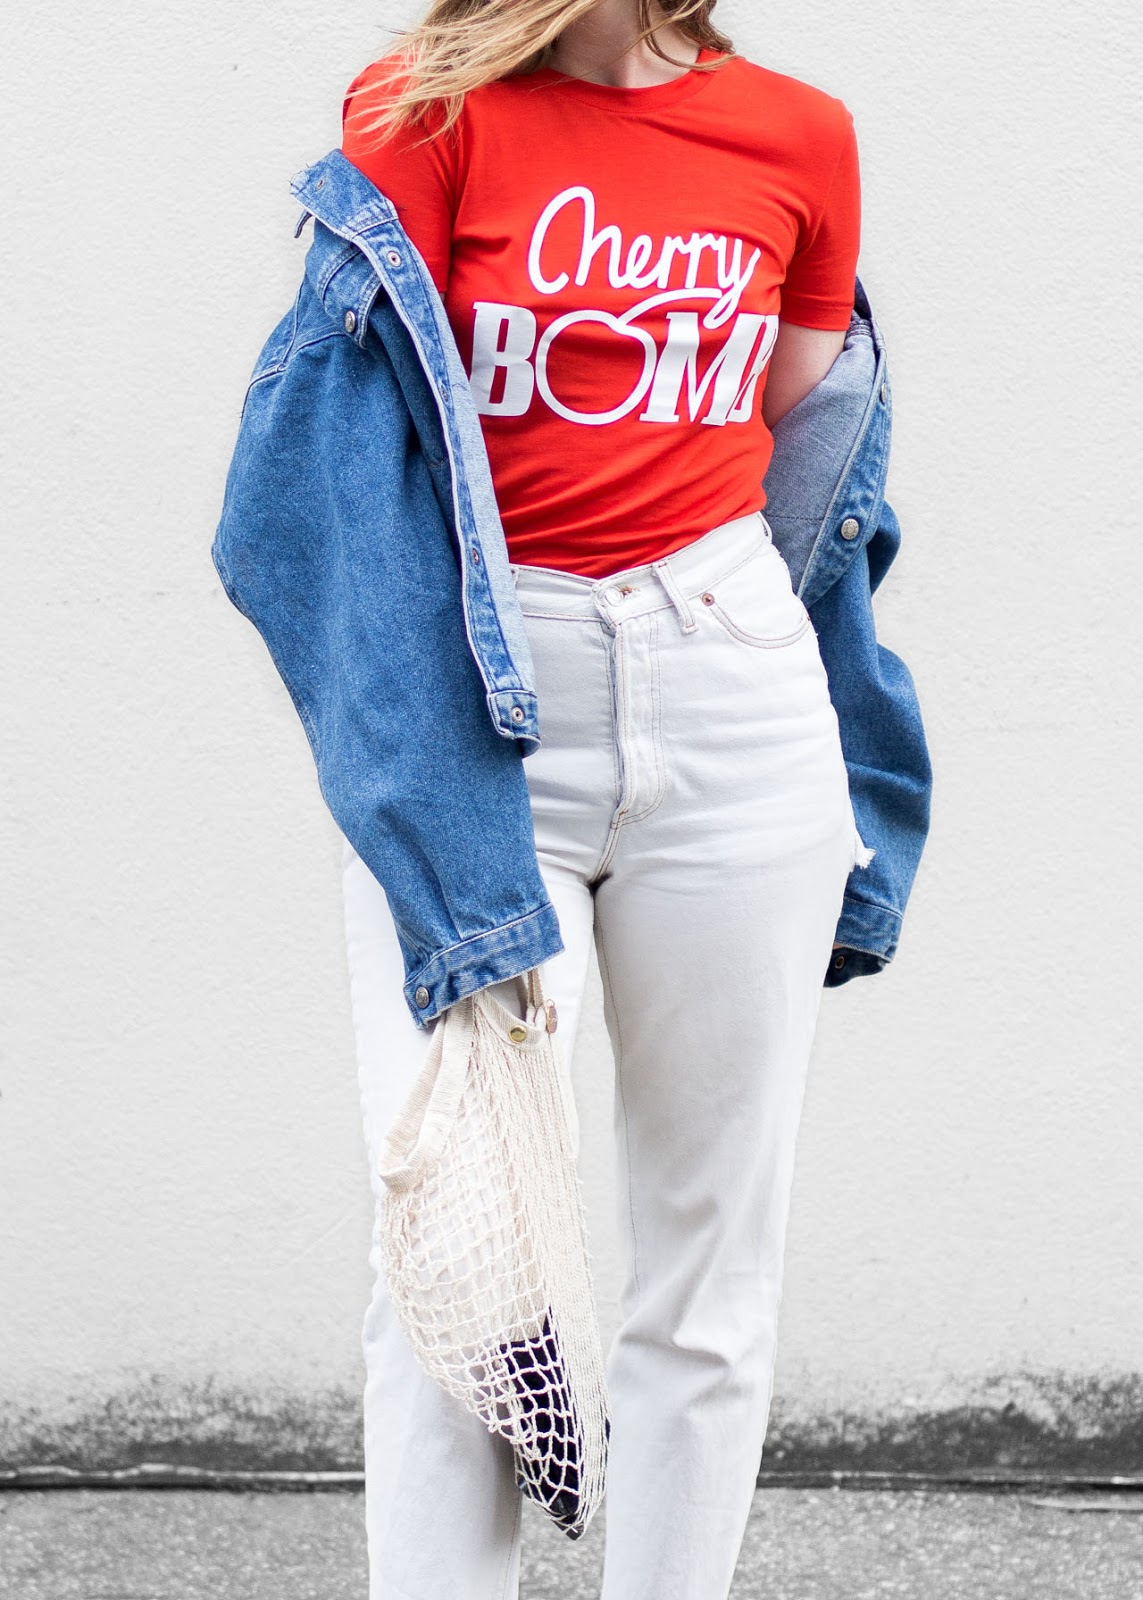 Favorite fashion purchases of the year - Ganni cherry bomb t-shirt